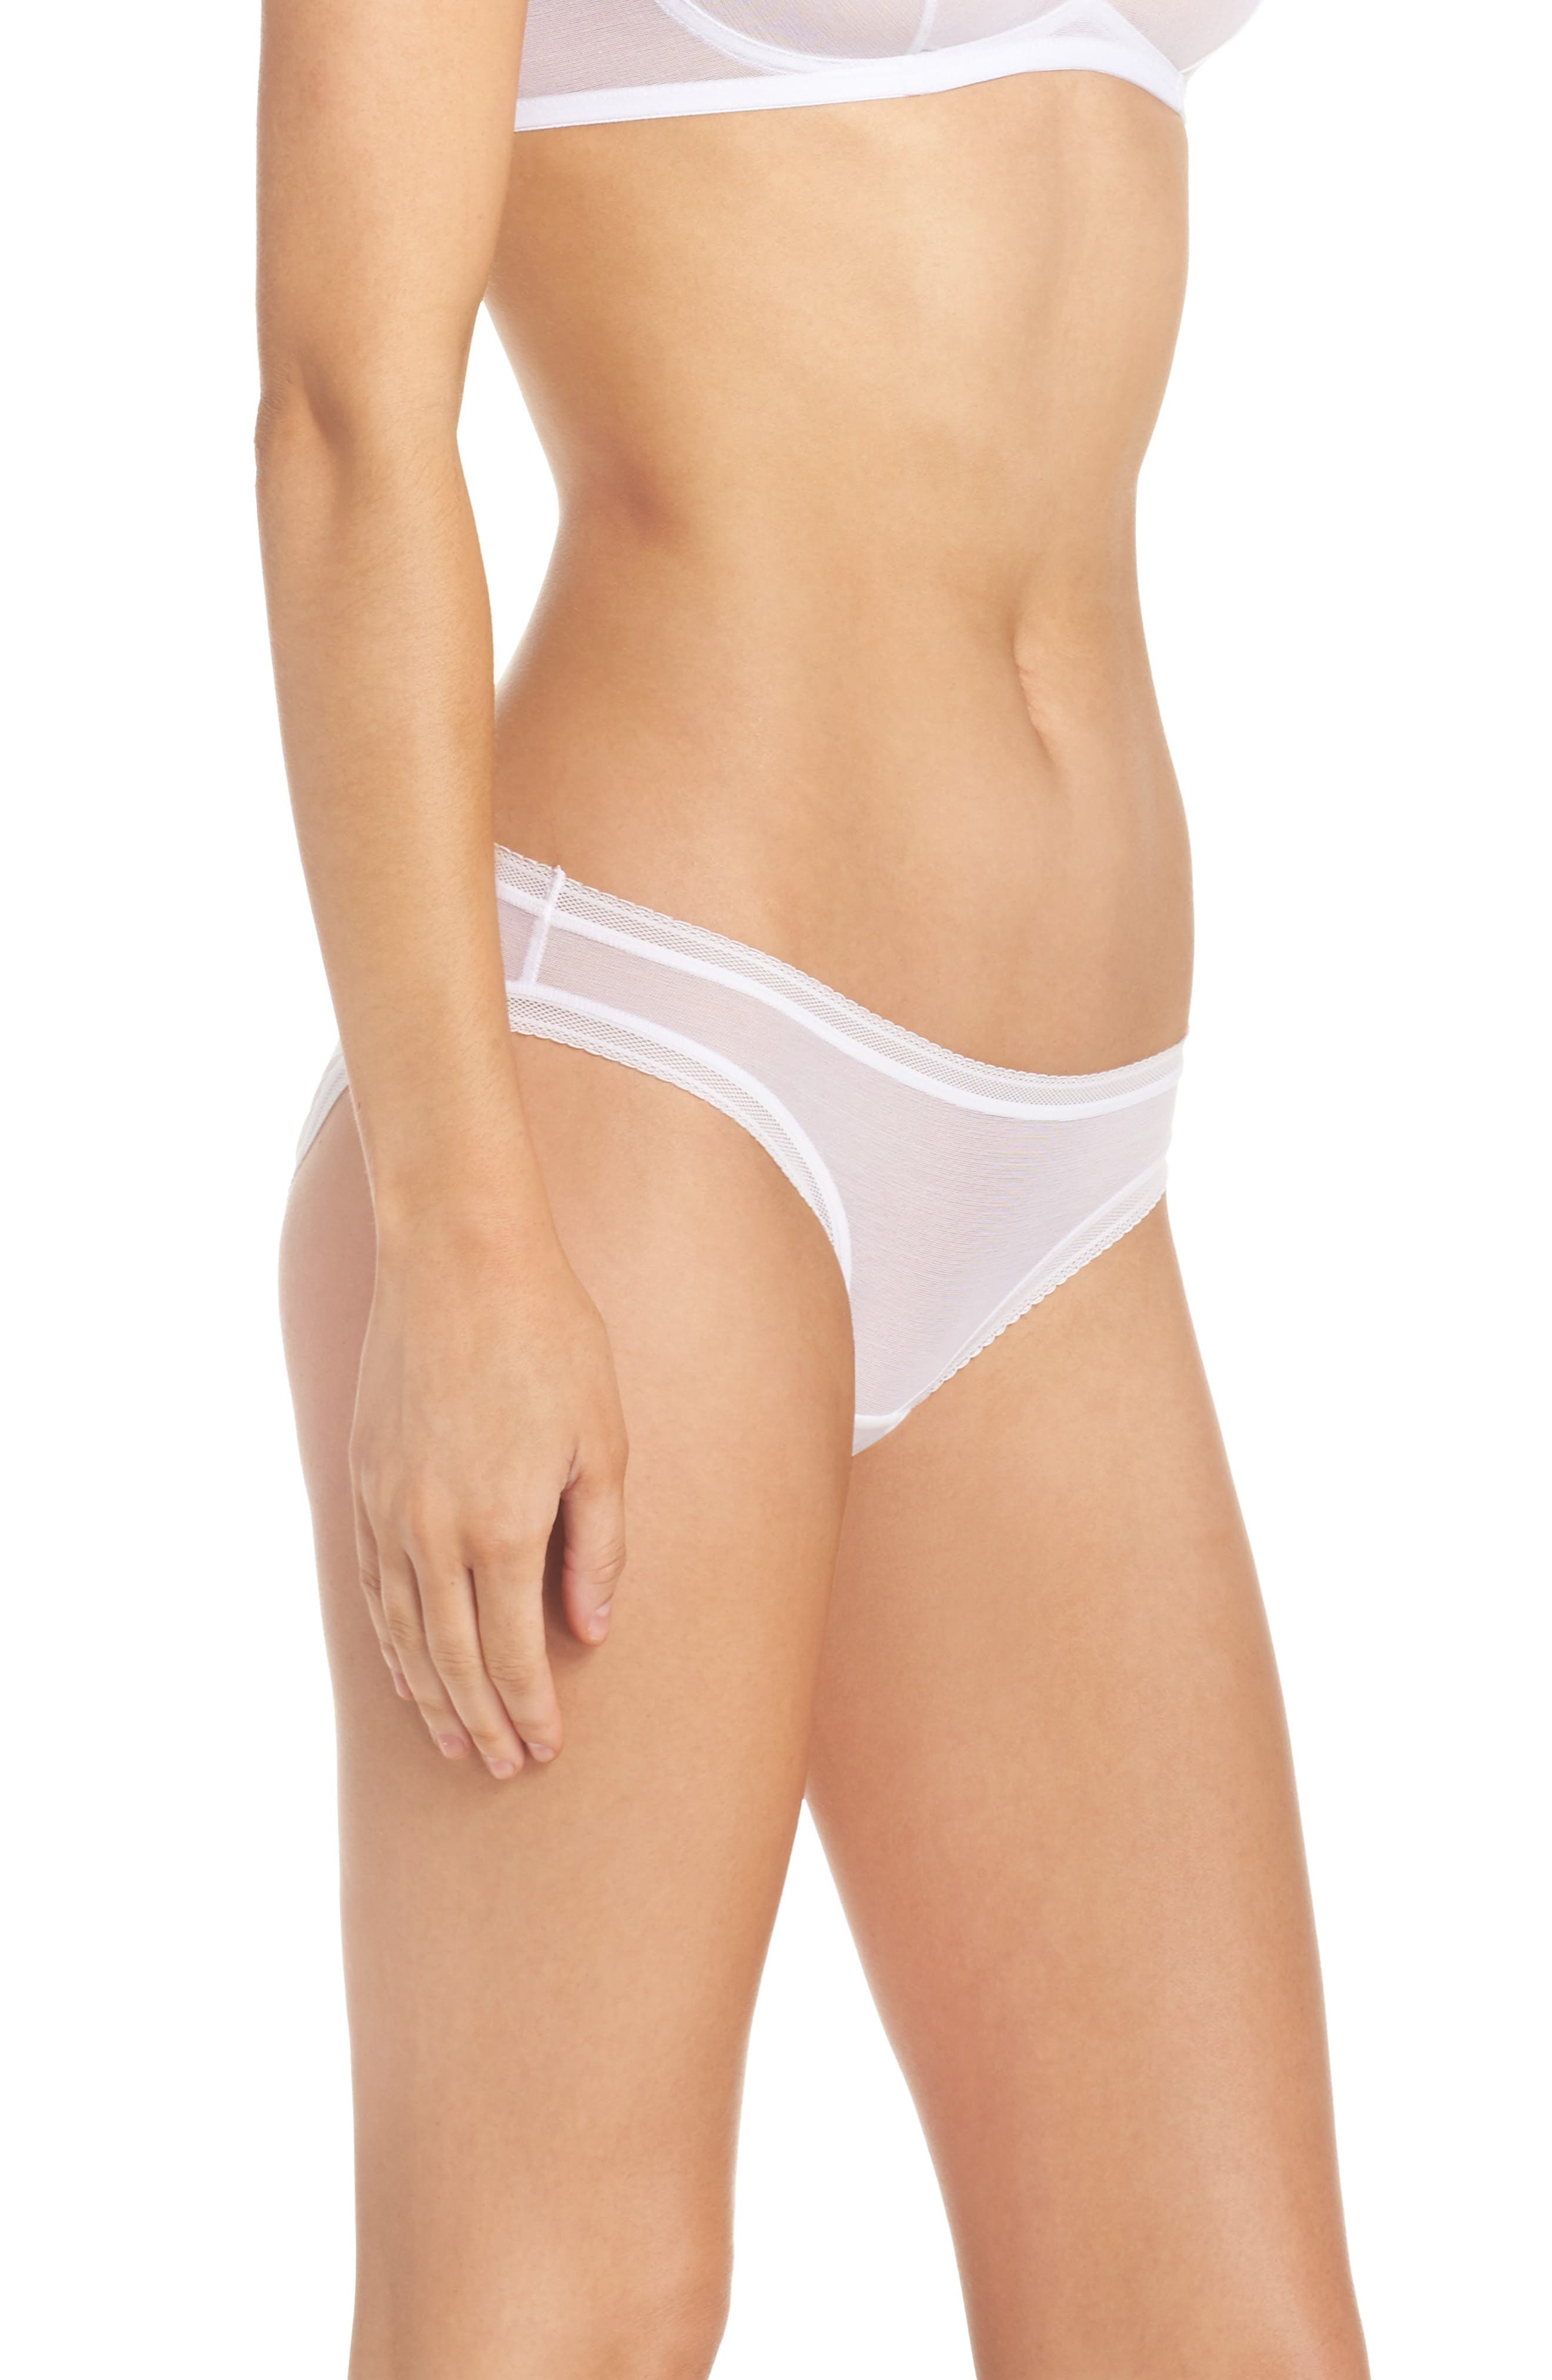 Mesh Bikini,                             Alternate thumbnail 3, color,                             White